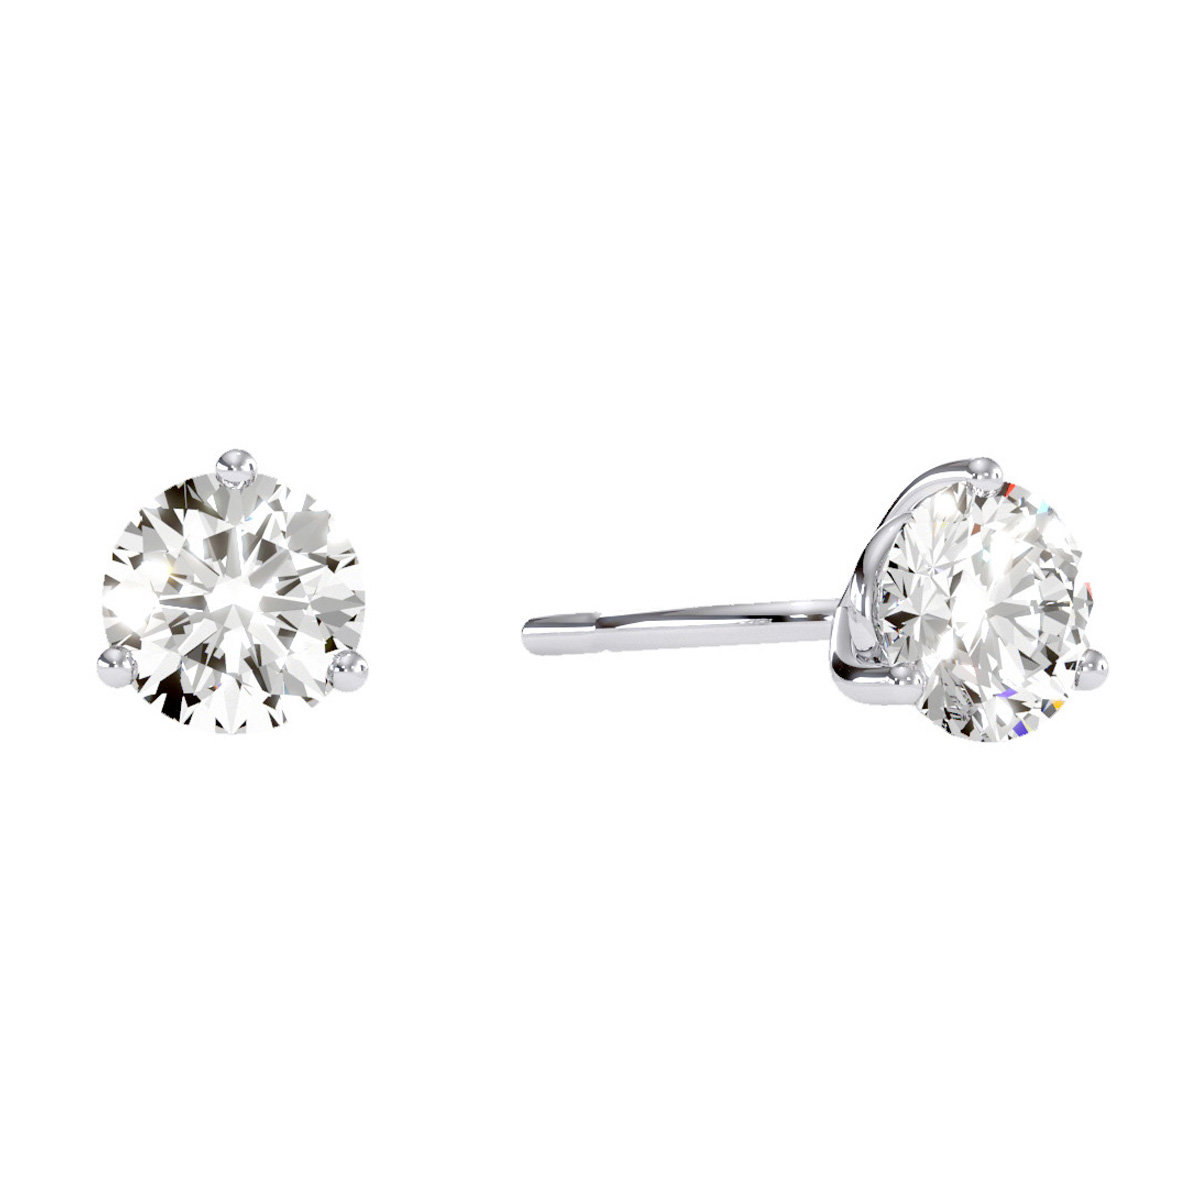 7437bfc6e Superjeweler | 1 1/2 Carat Diamond Martini Stud Earrings In 14 Karat ...